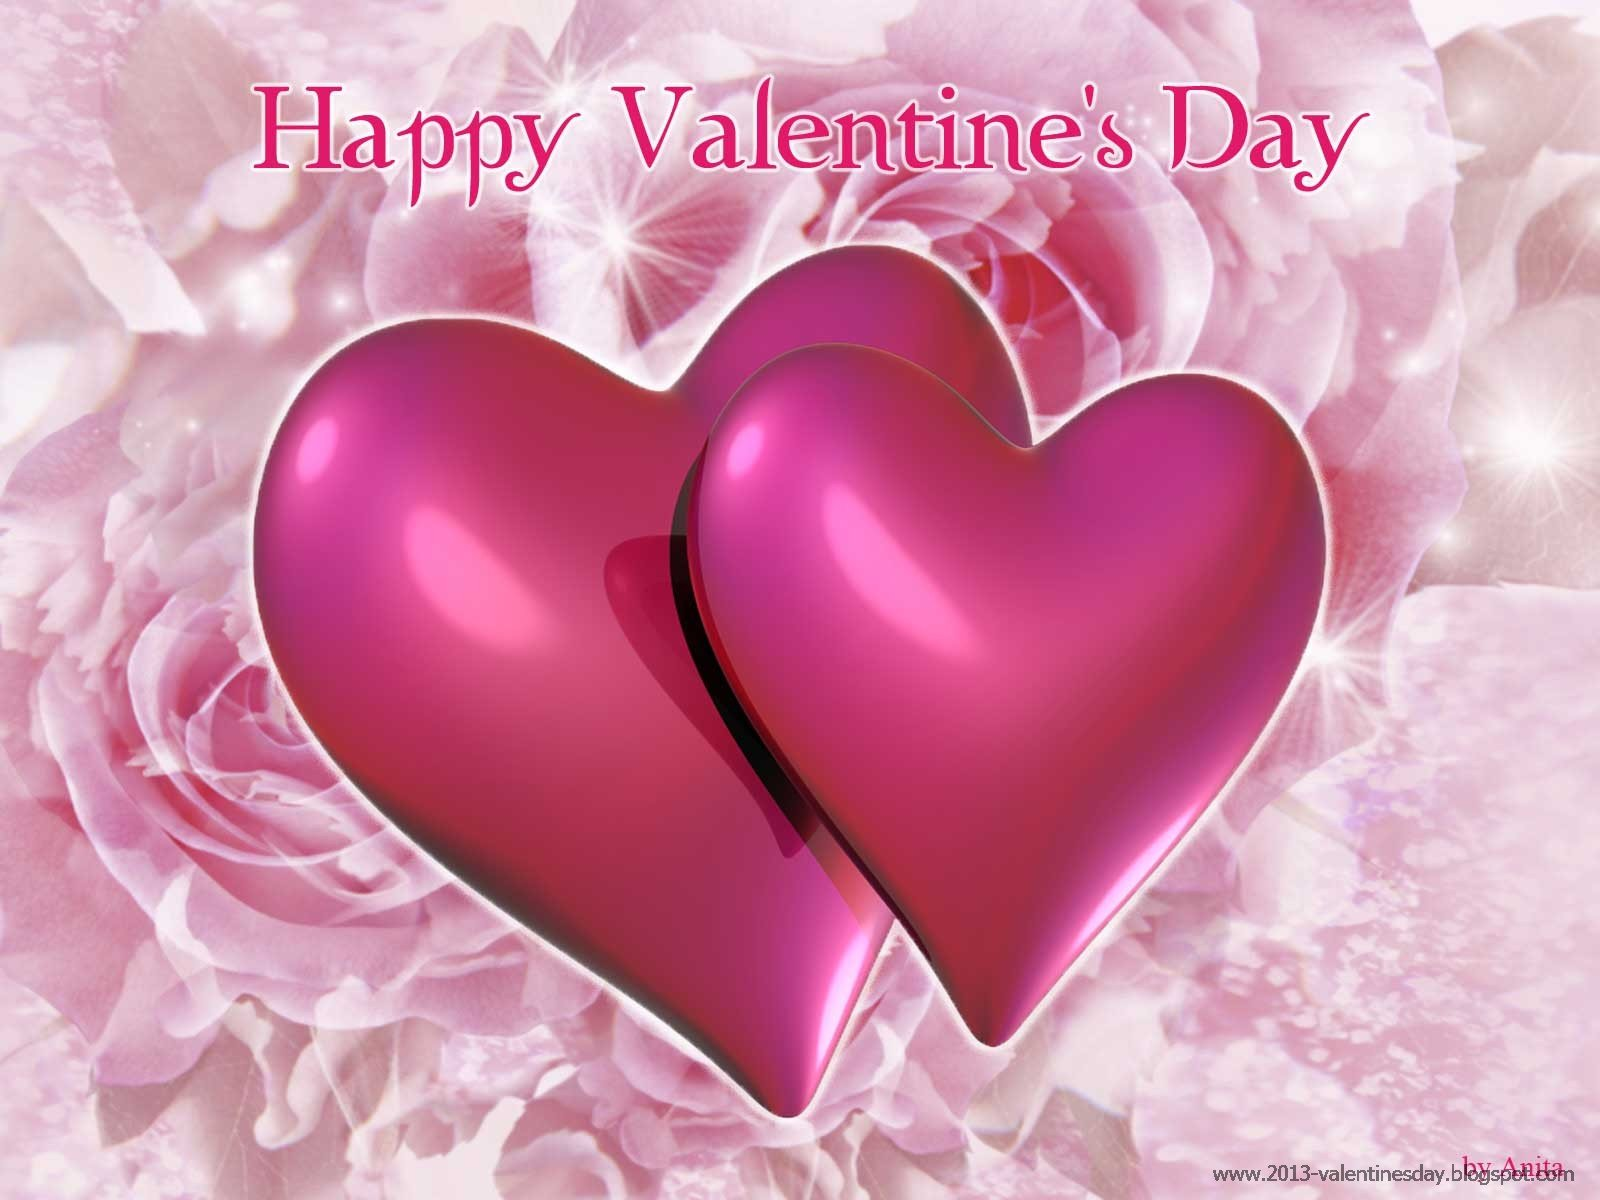 Happy valentines day images hd wallpaper